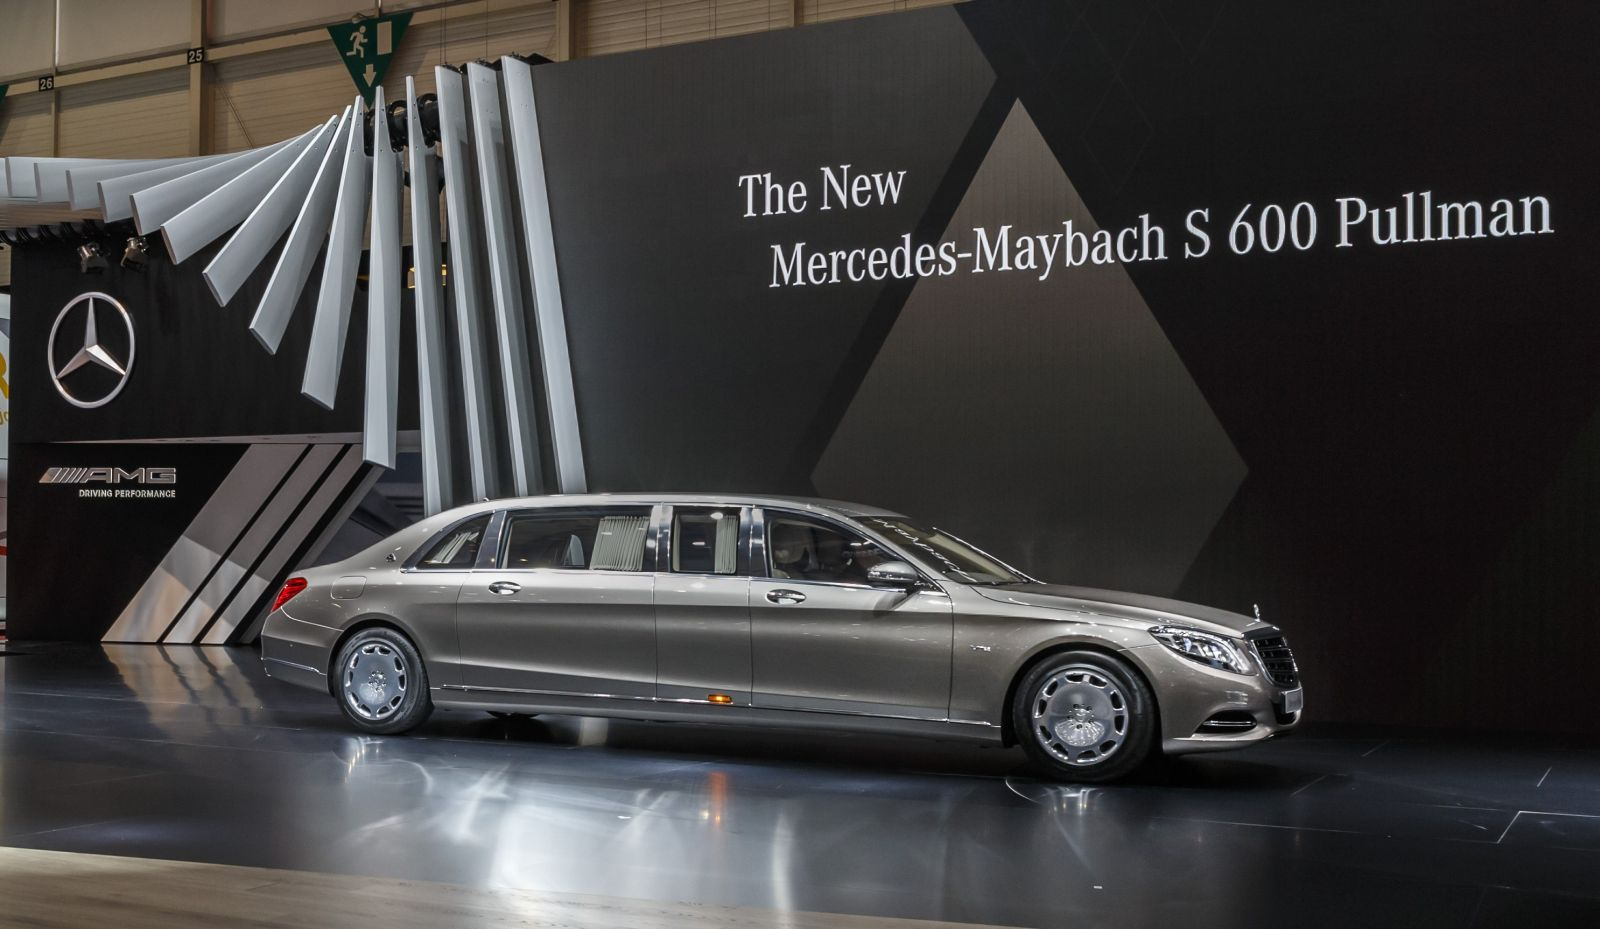 2019 Mercedes Benz S600 Pullman Maybach photo - 5